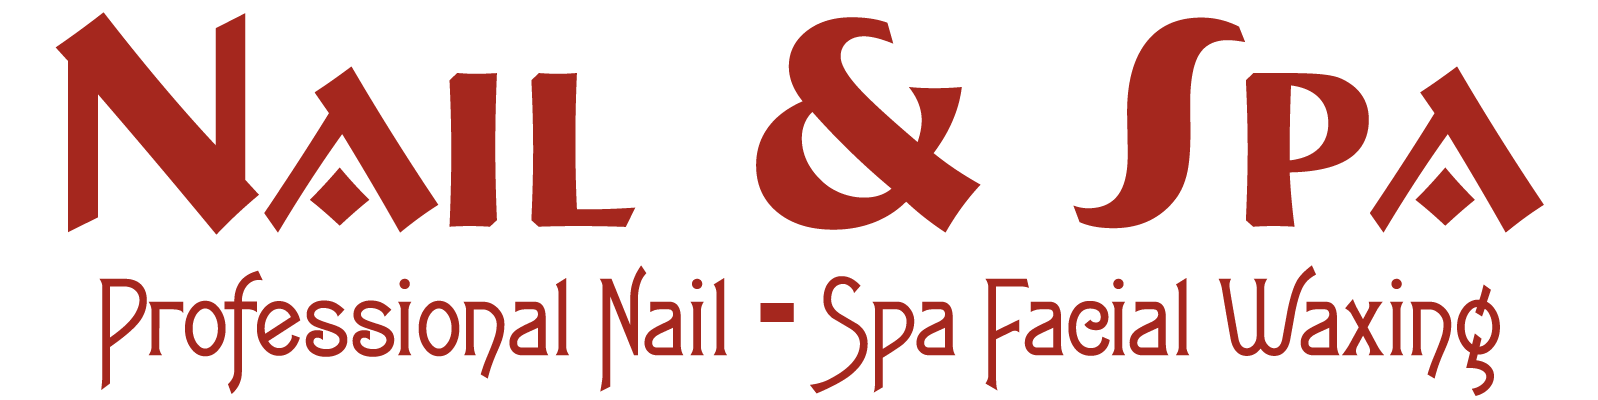 Gallery collection Nail & Spa - Best Nail salon in Virginia Beach VA 23464